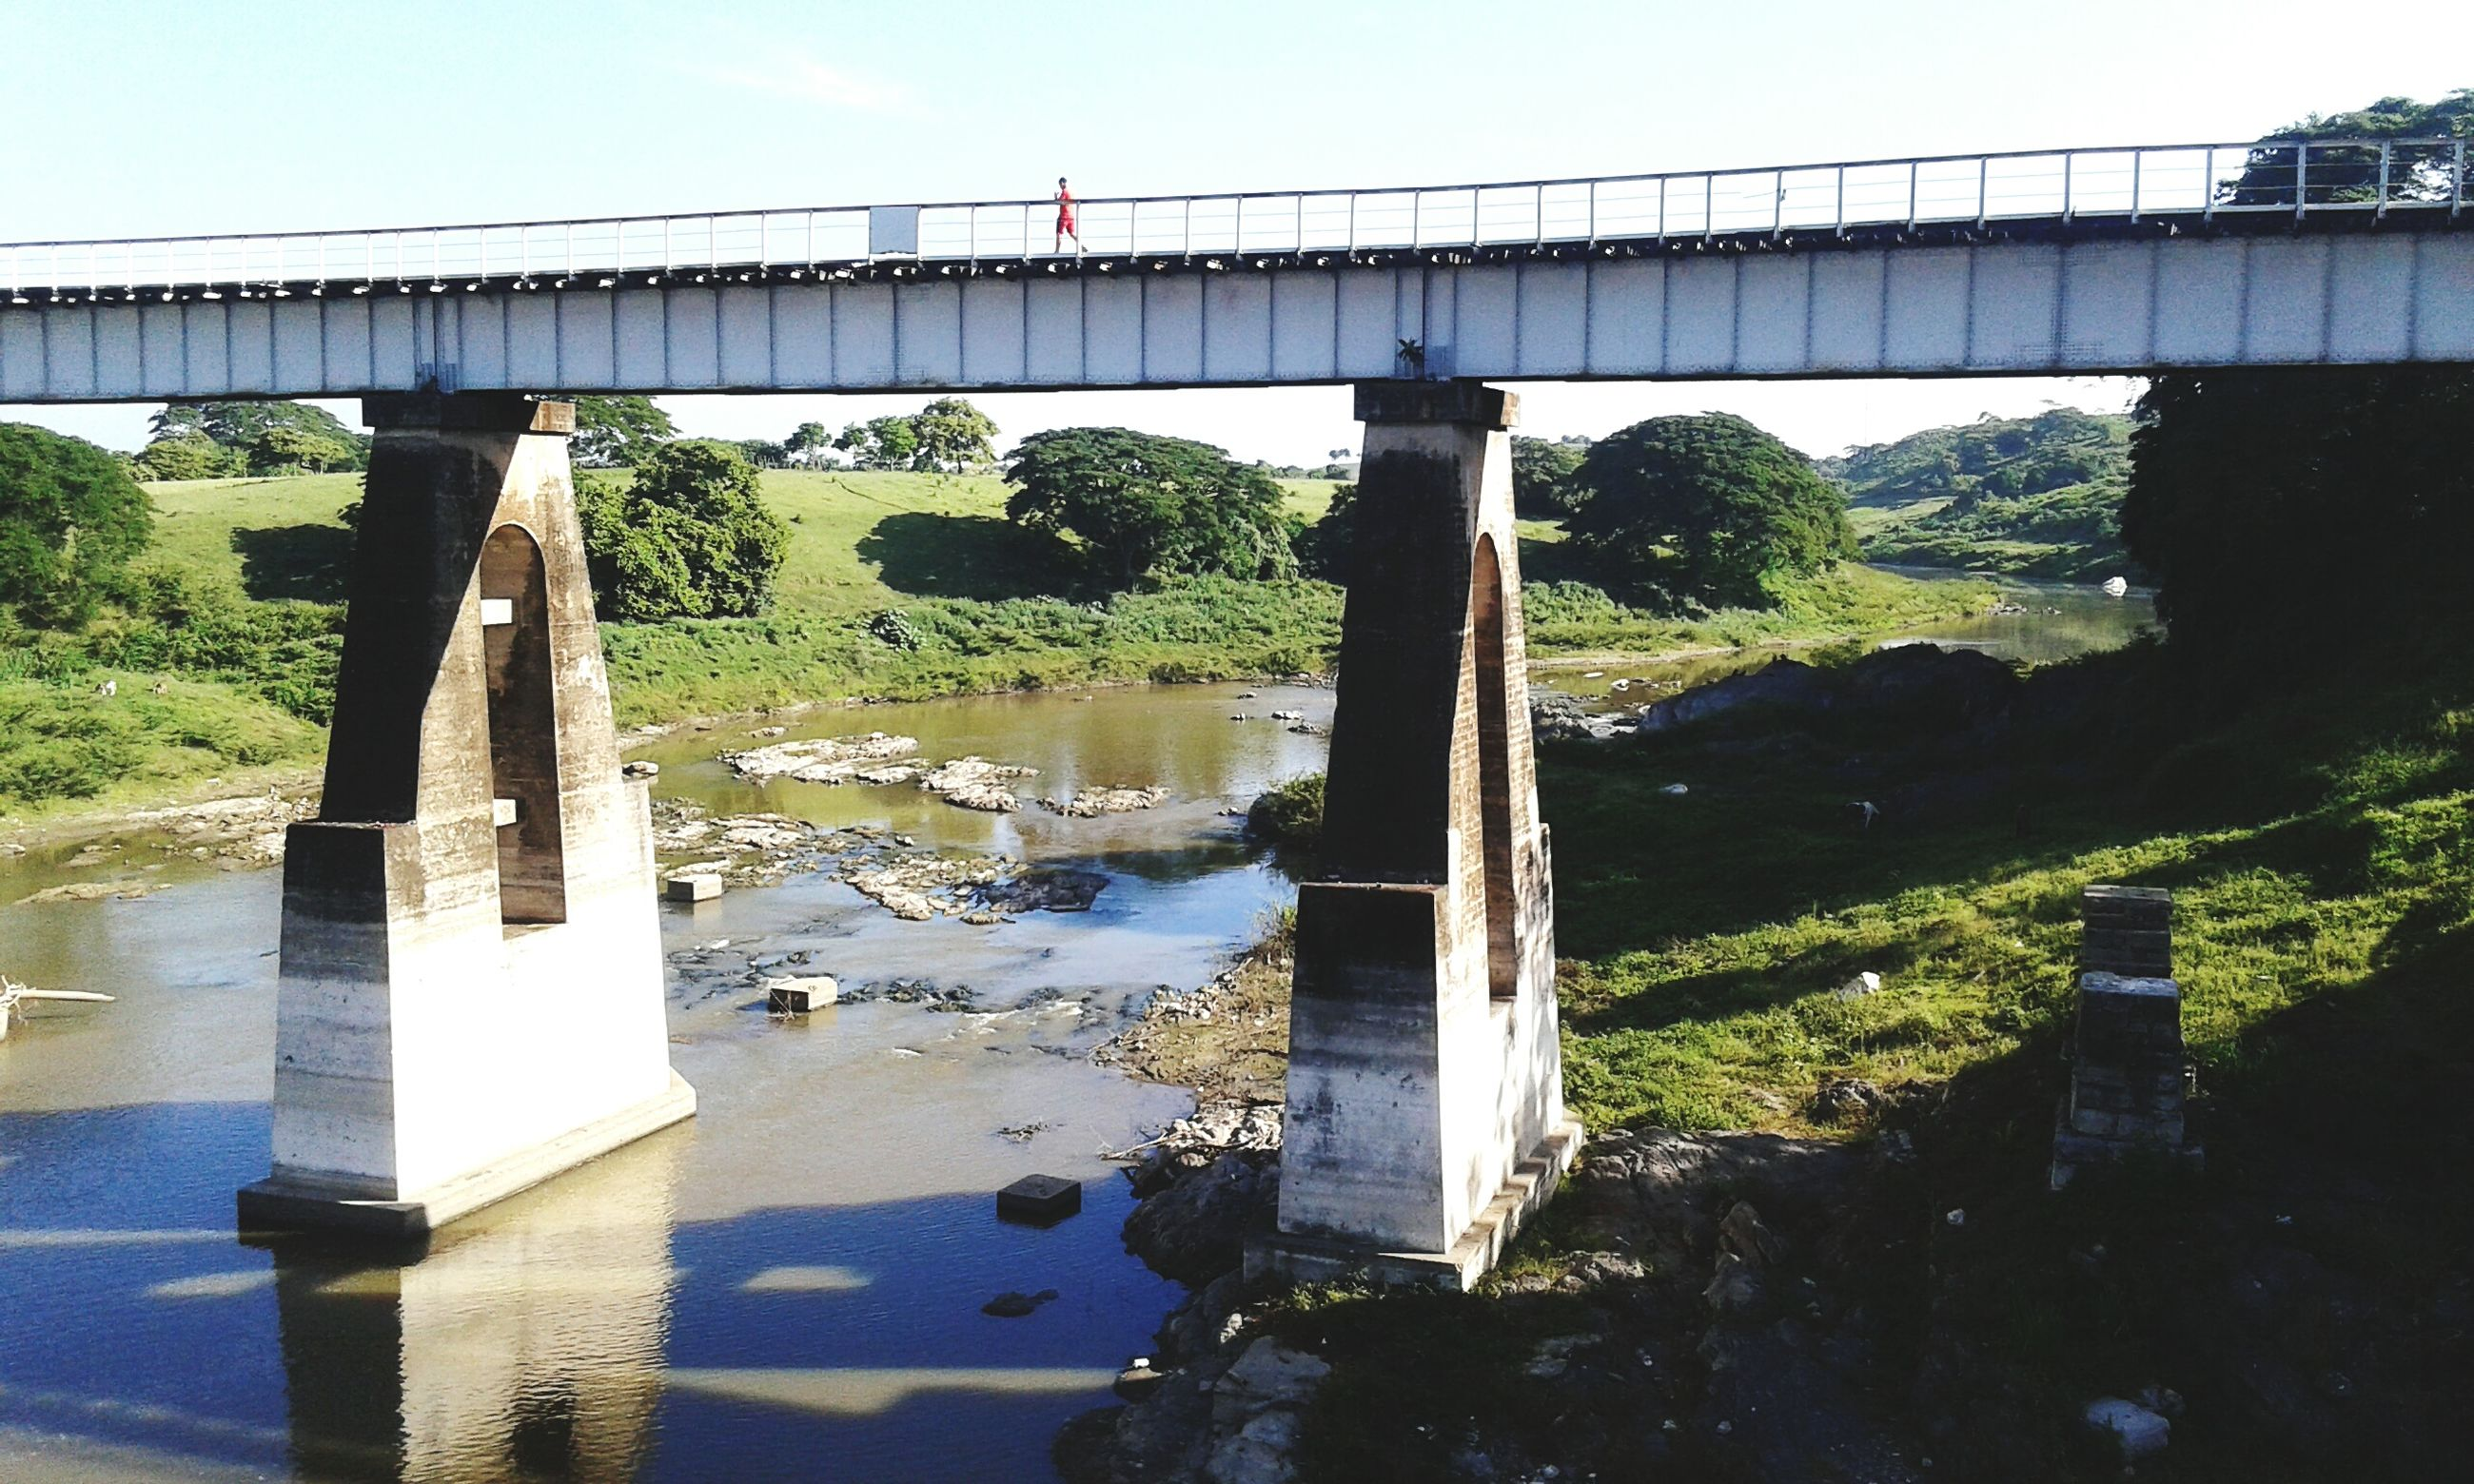 connection, bridge - man made structure, built structure, architecture, water, bridge, architectural column, river, engineering, sky, day, outdoors, canal, no people, green color, standing water